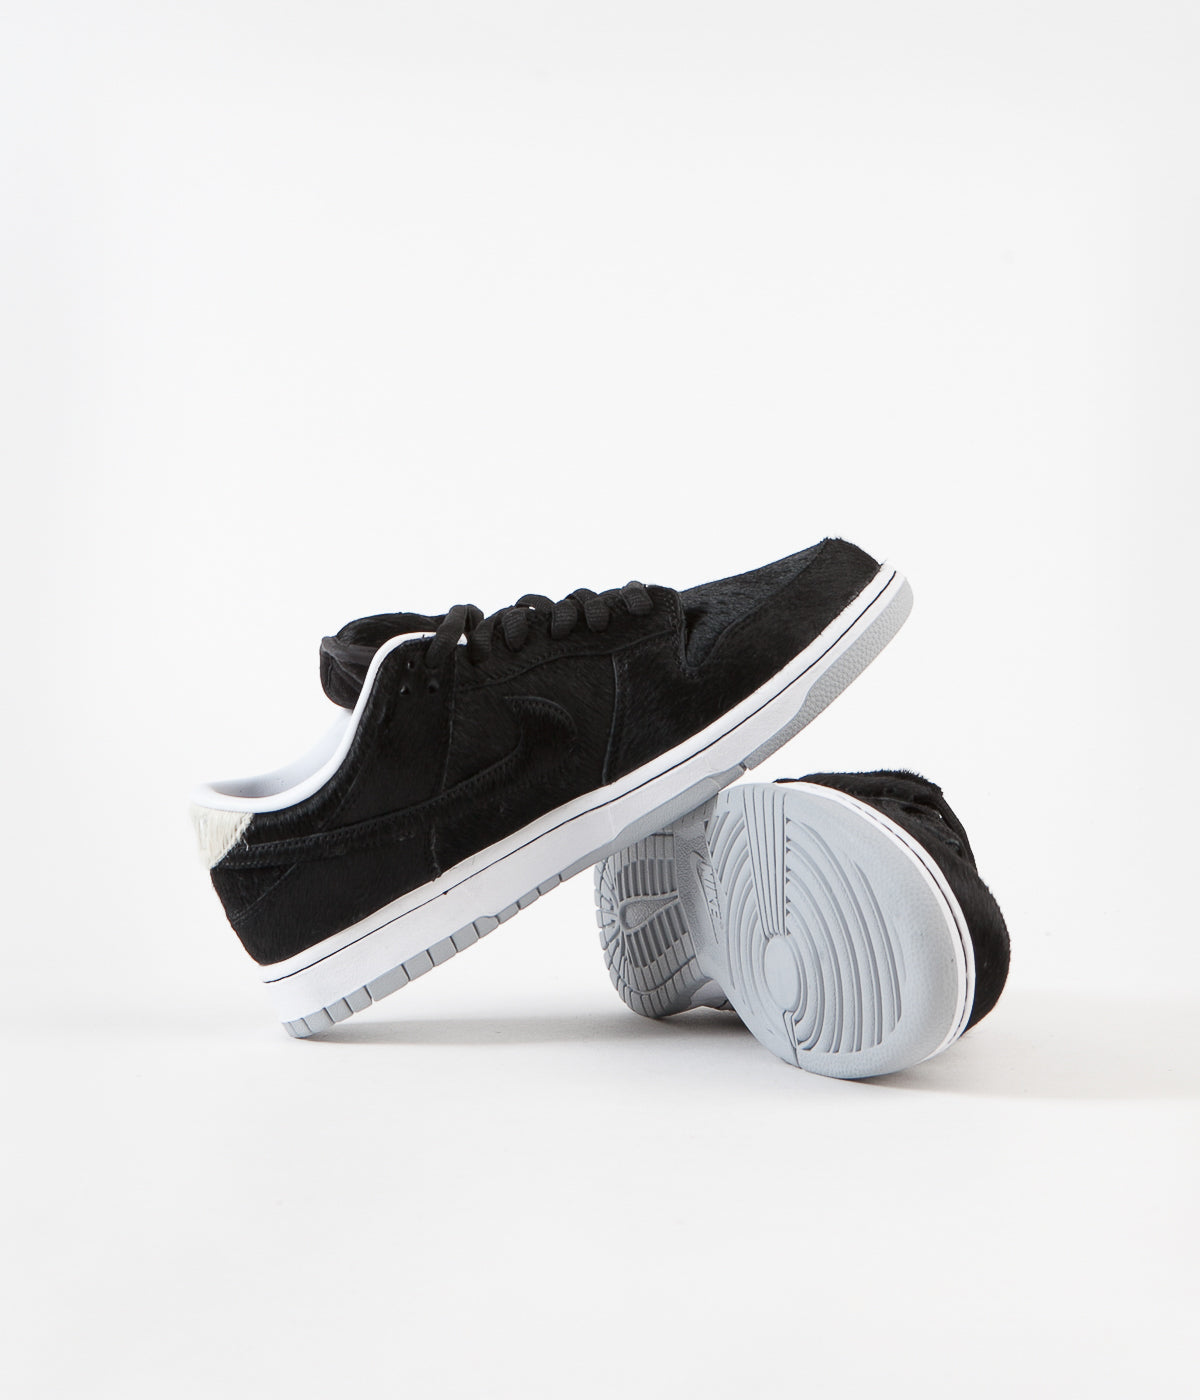 Nike SB Dunk Low OG Medicom Shoes - Black / Black - White